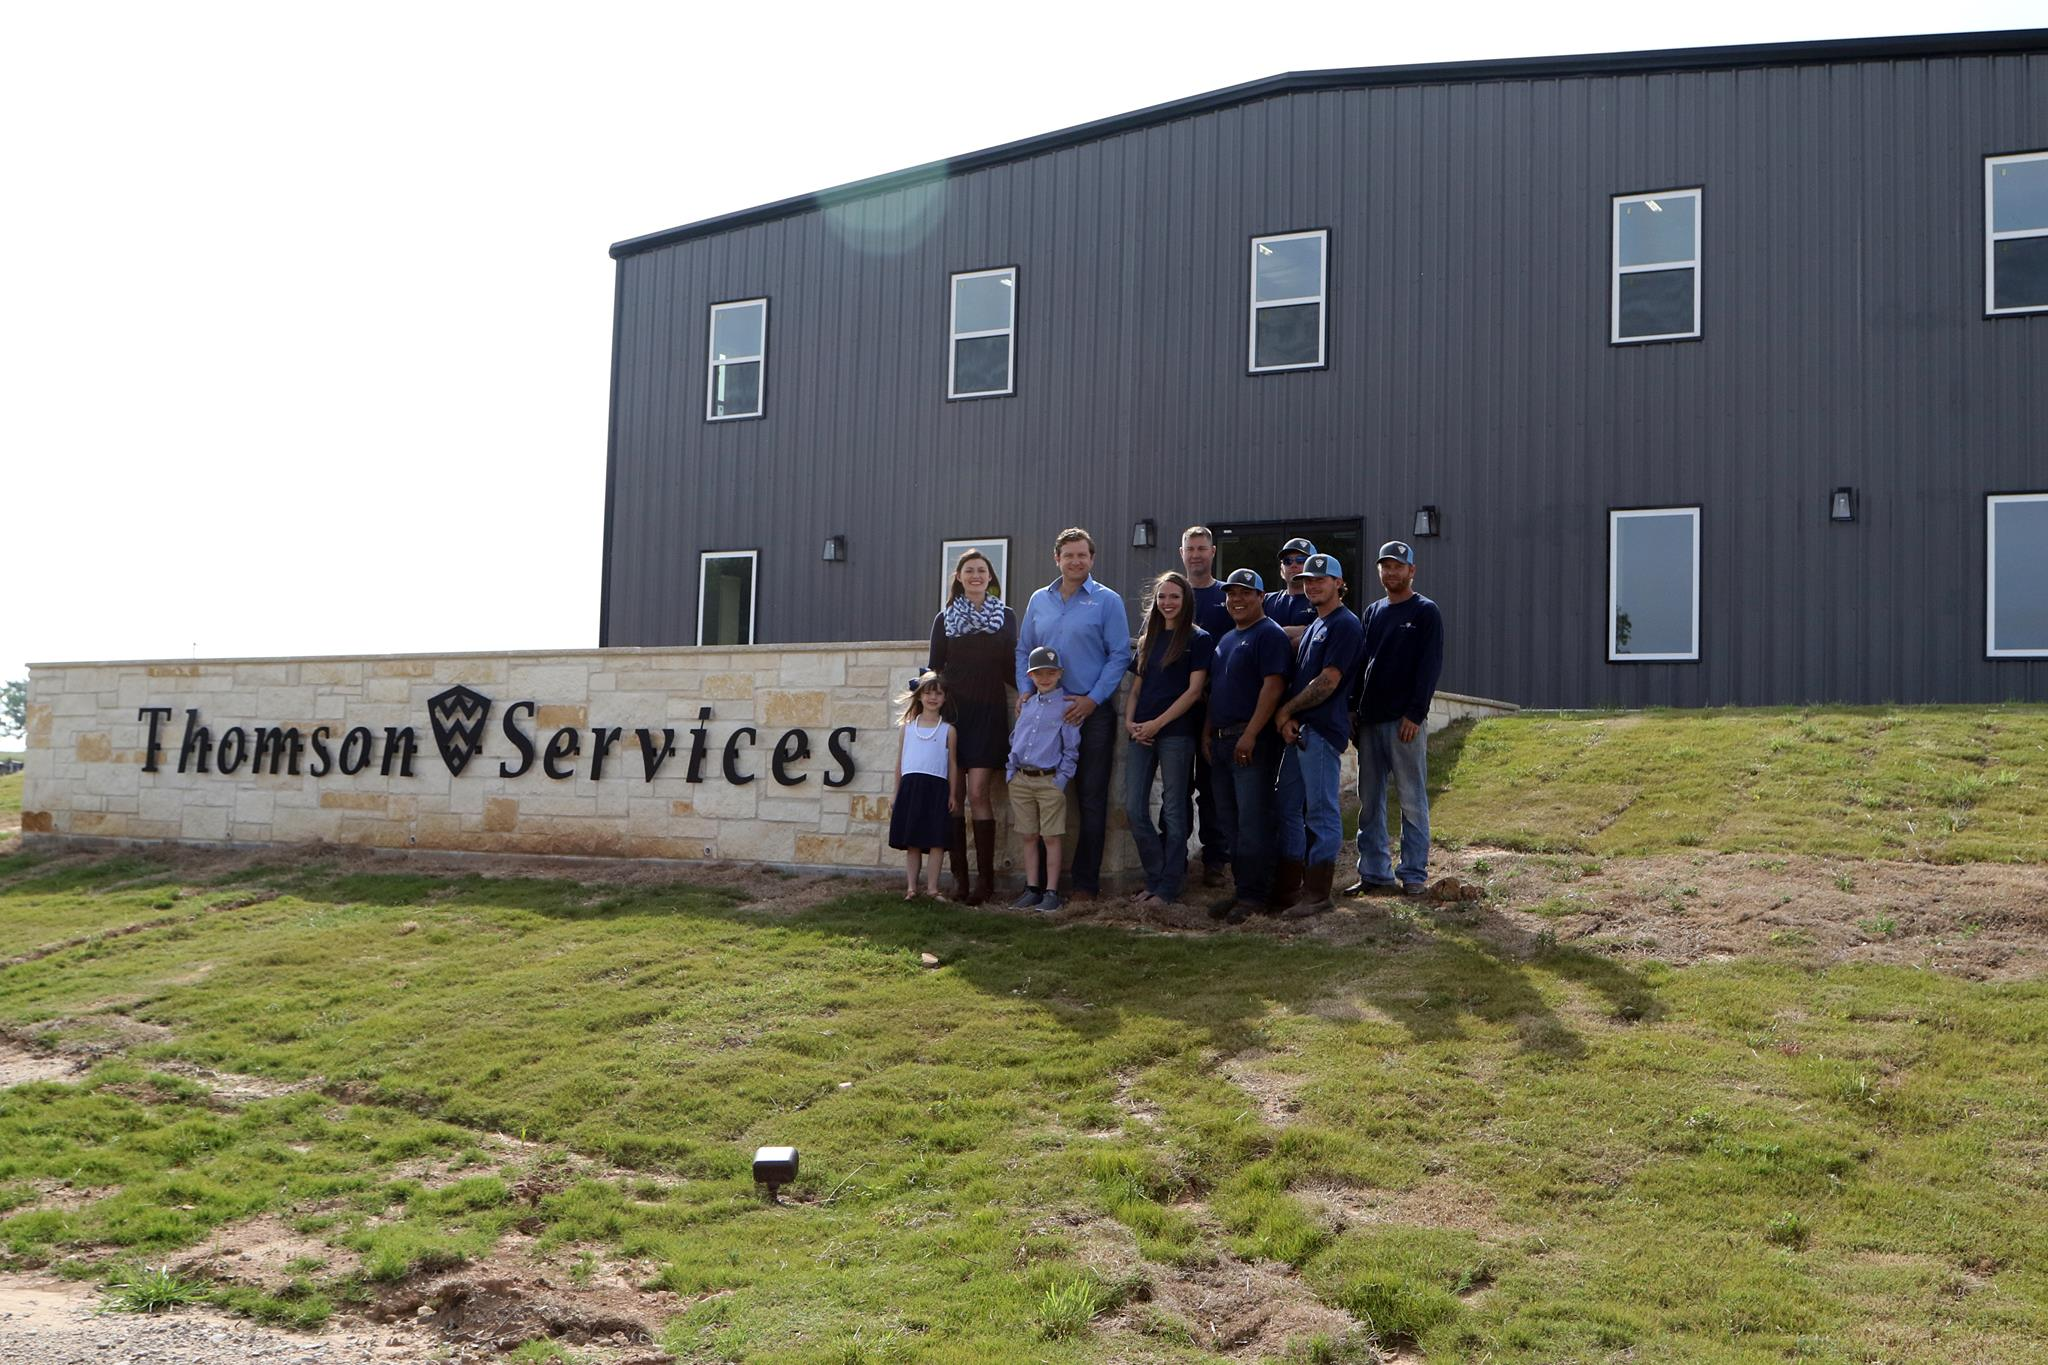 Thomson Services is one of the newest Lely Centers in the US and is based in Dublin, Texas.